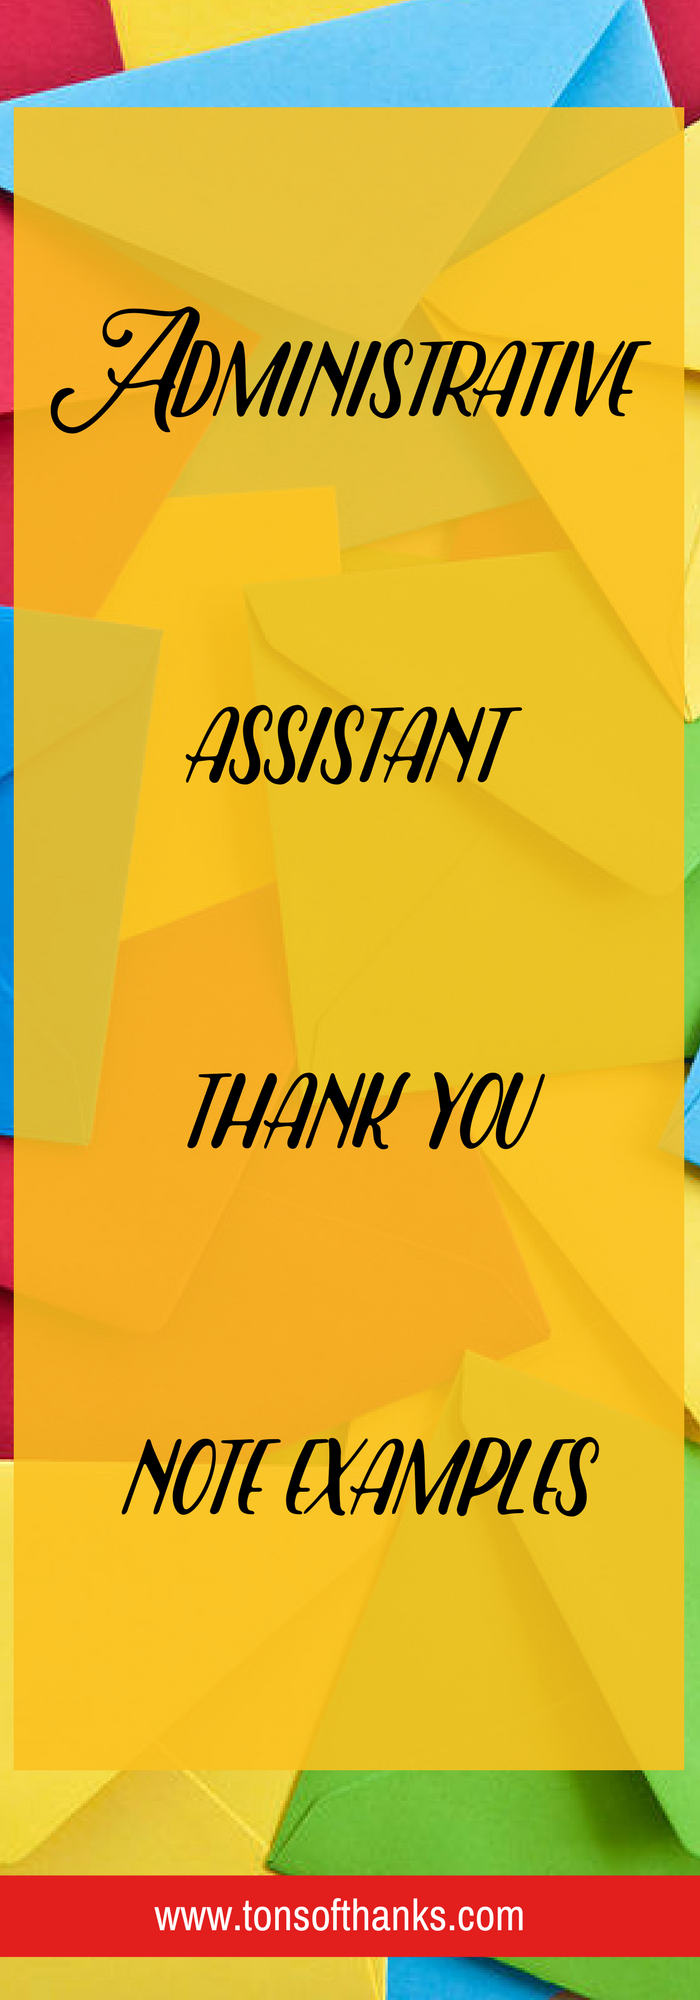 Example thank you notes for an administrative assistant | Note